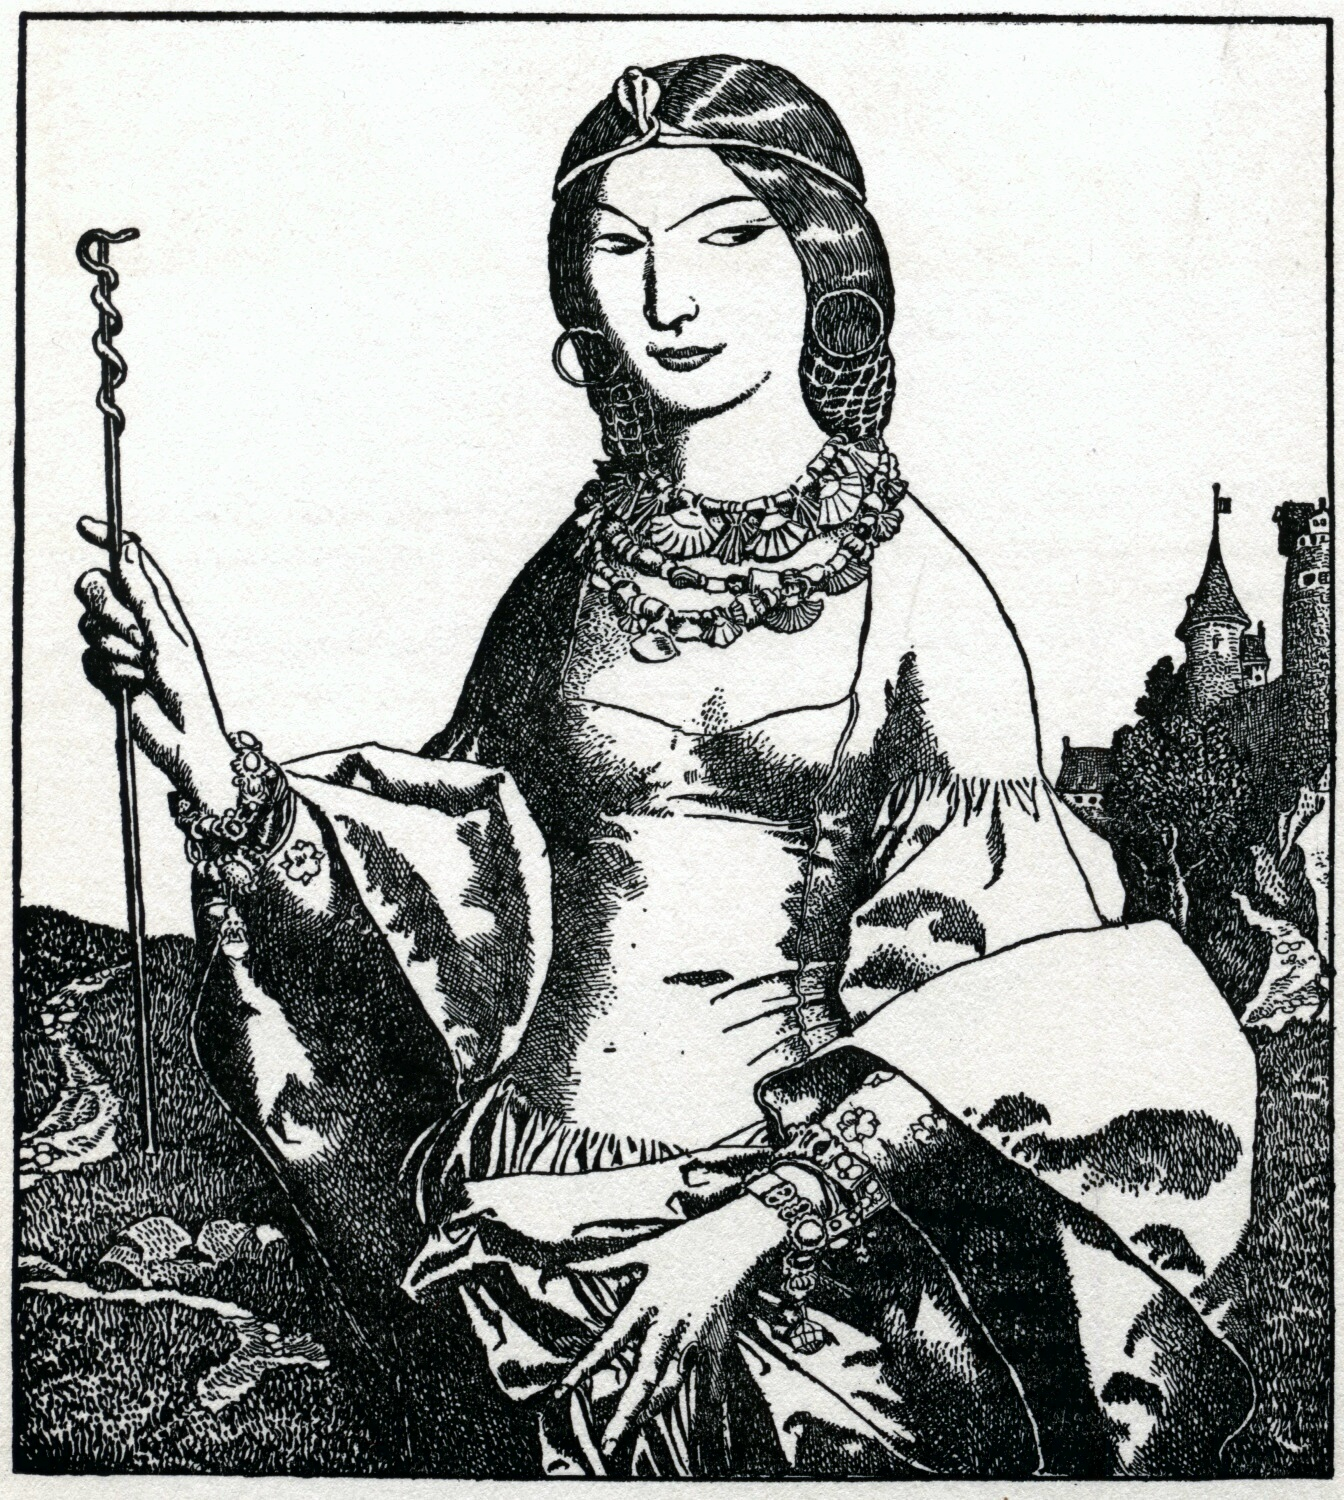 Black & white engraving of a beautiful enchantress